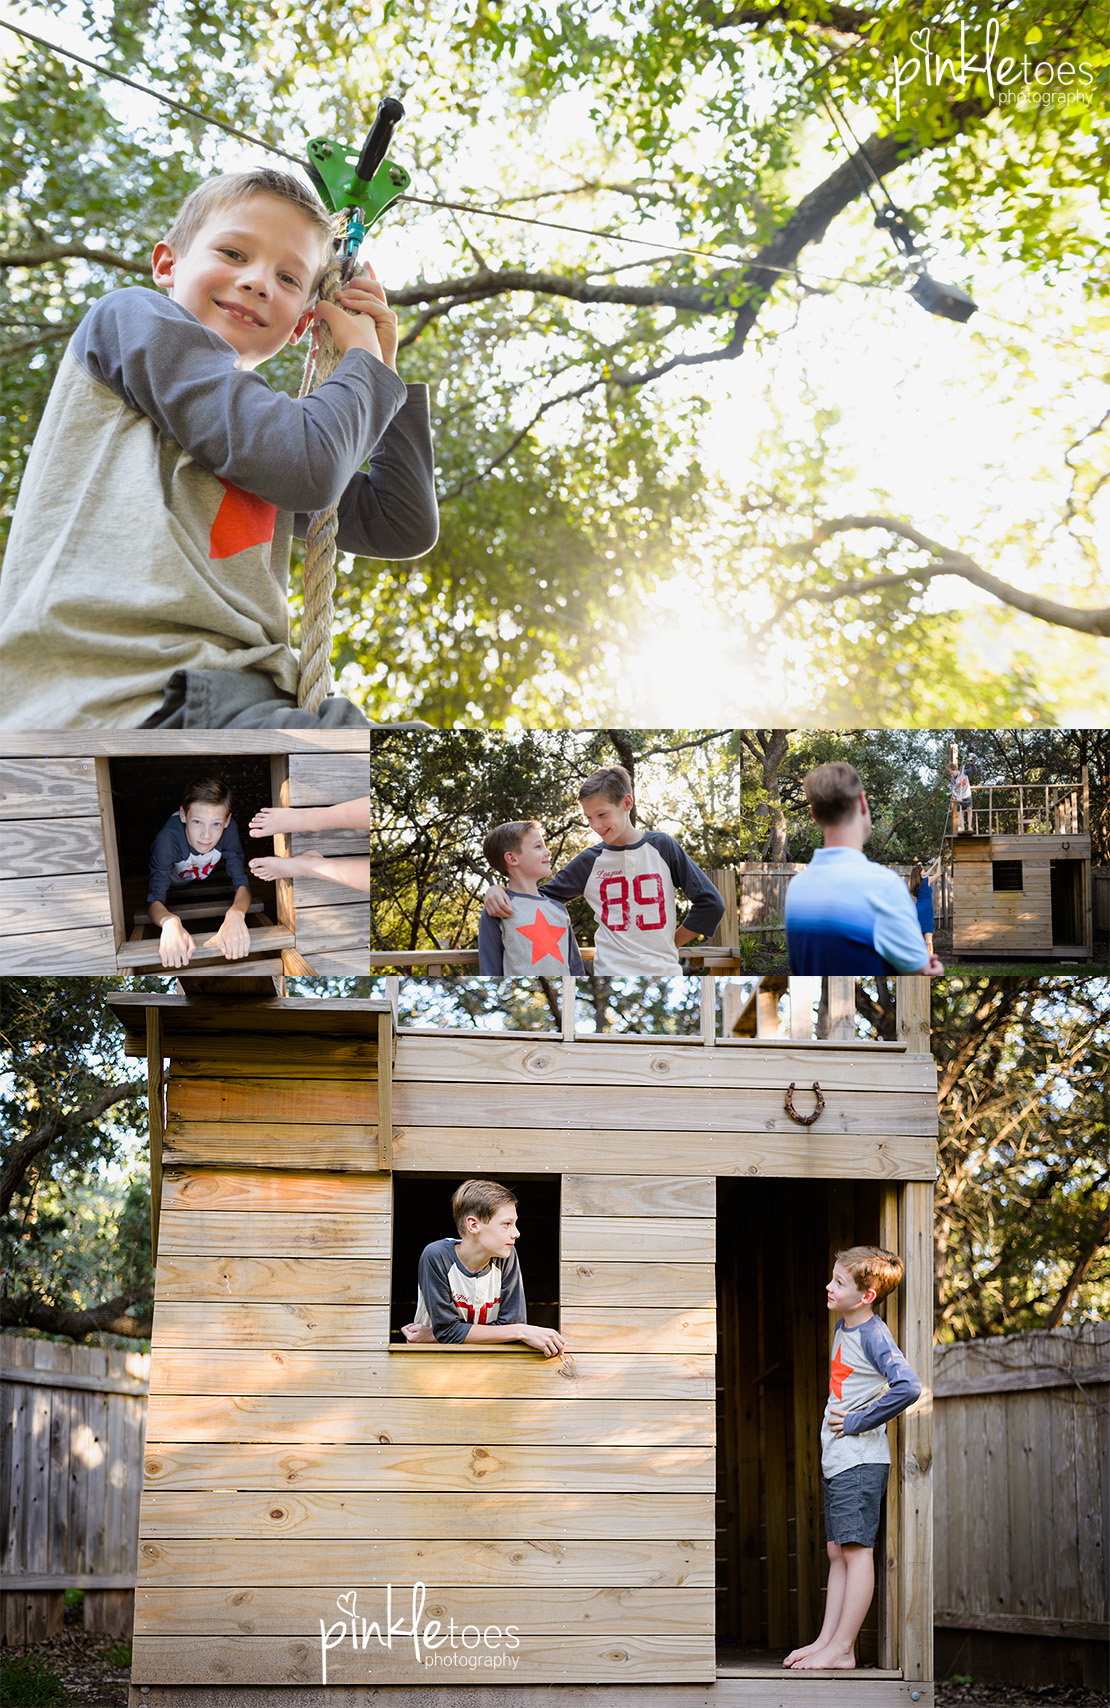 austin-treehouse-family-photographer-photo-session-legos-treehouse-zipline-soccer-boys